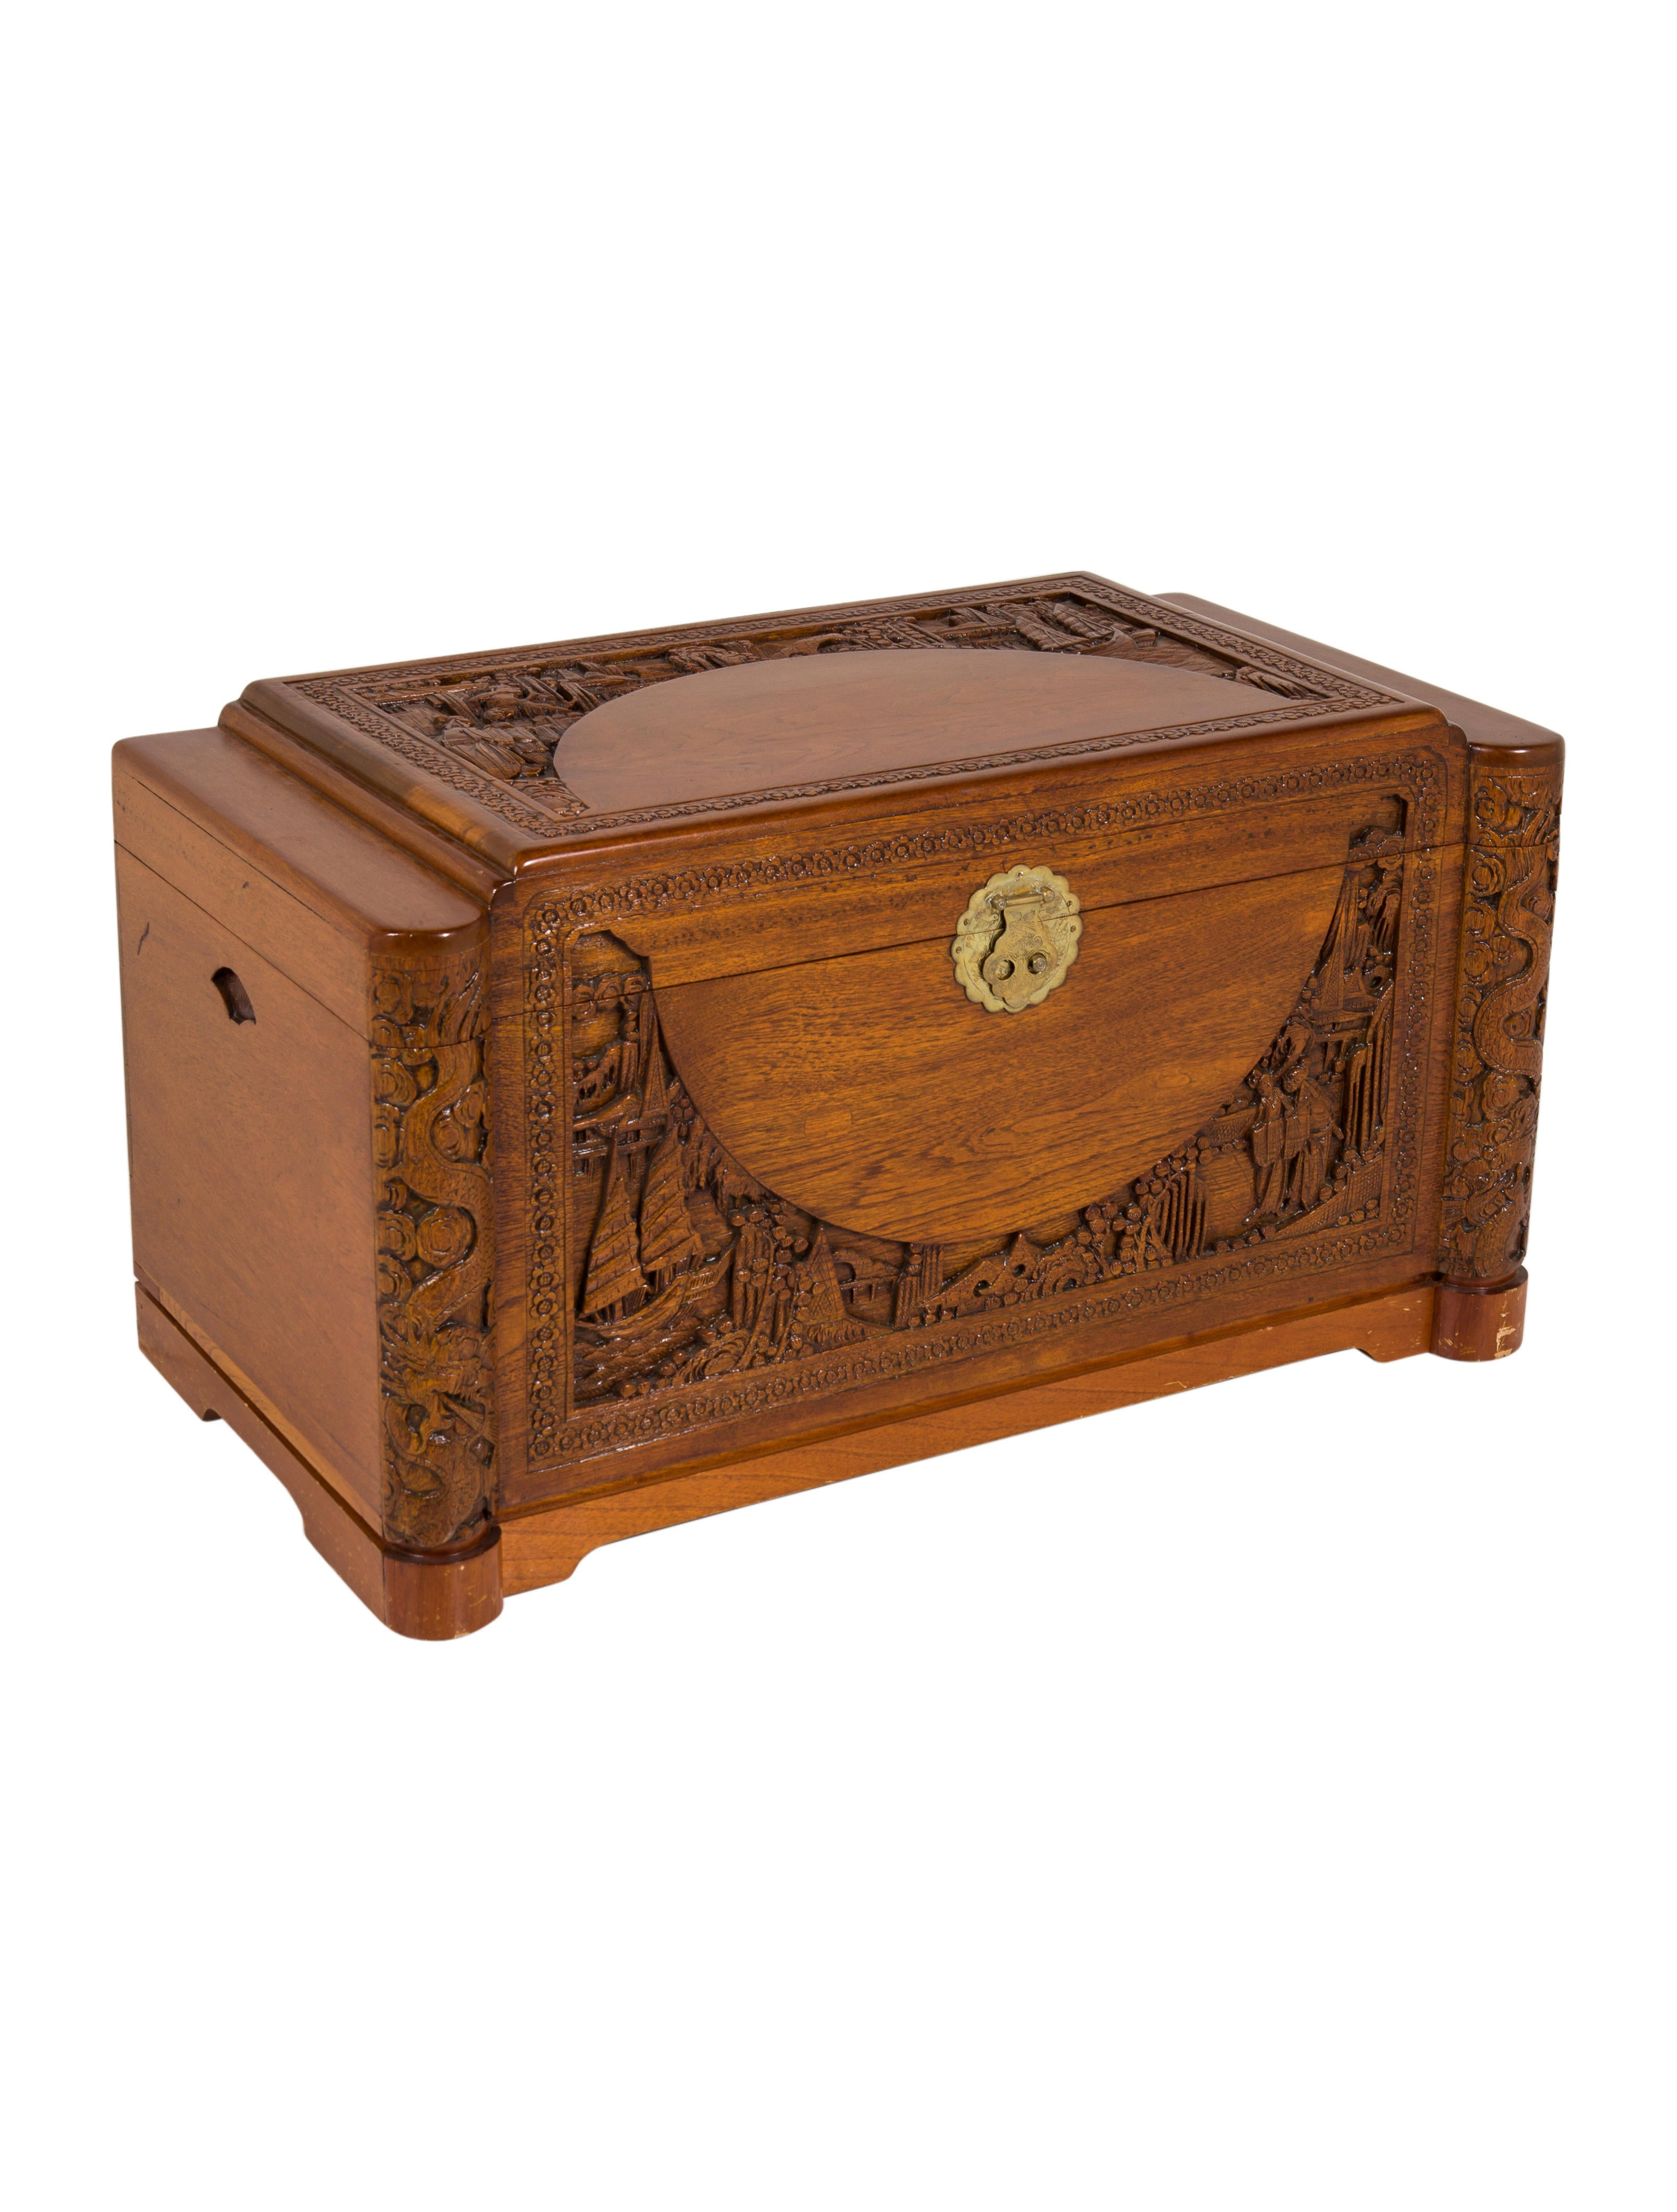 Carved Wood Chest Furniture Furni20363 The Realreal